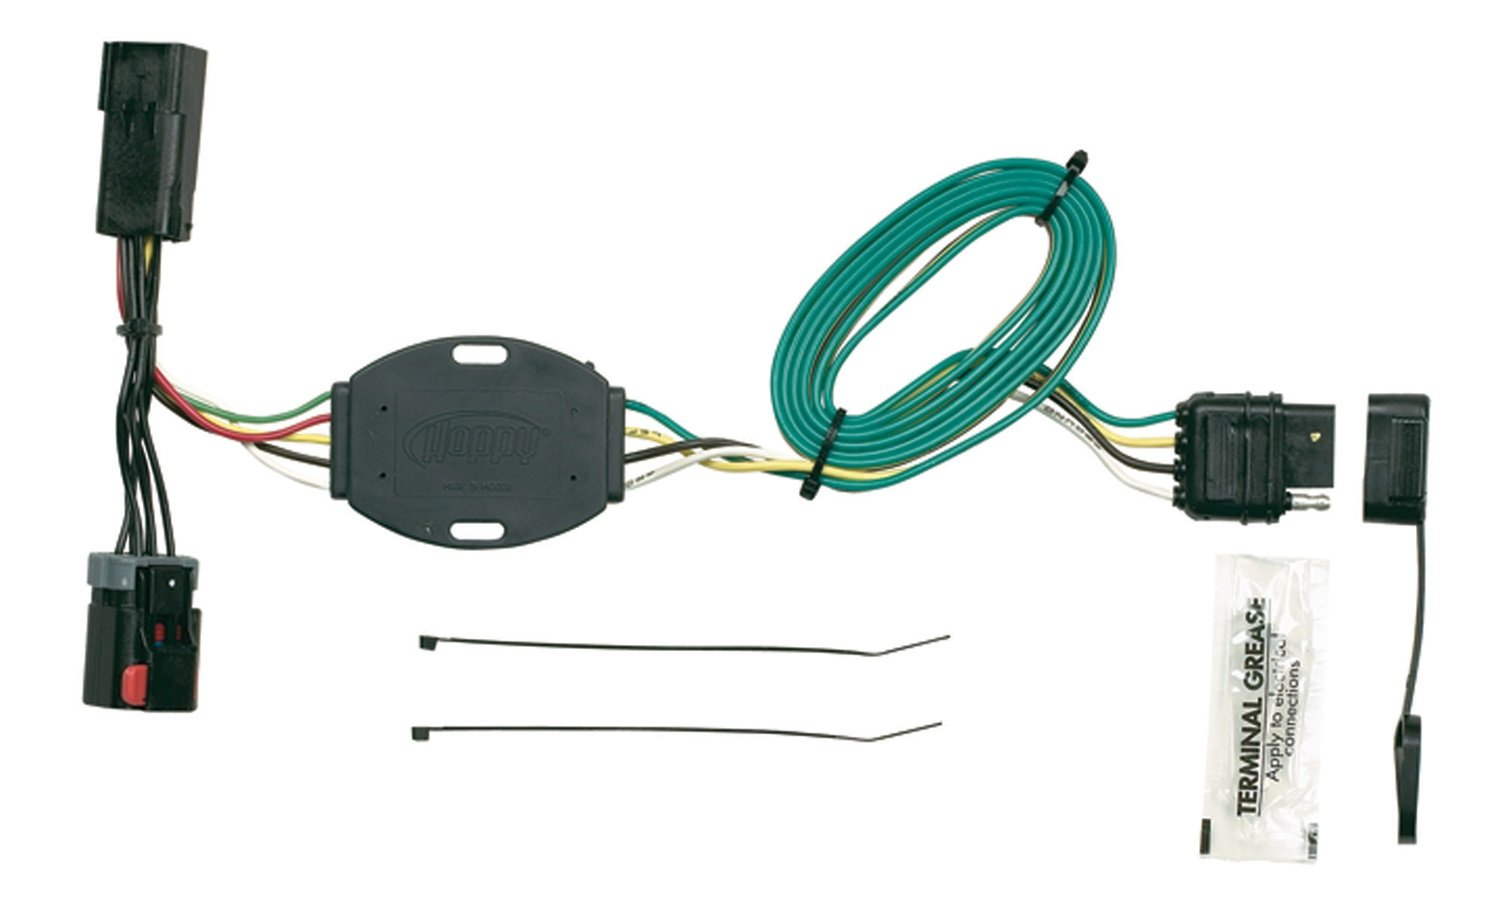 61tcExFsCZL._SL1500_ amazon com hopkins 42225 plug in simple vehicle wiring kit 2016 dodge grand caravan trailer wiring harness at mifinder.co